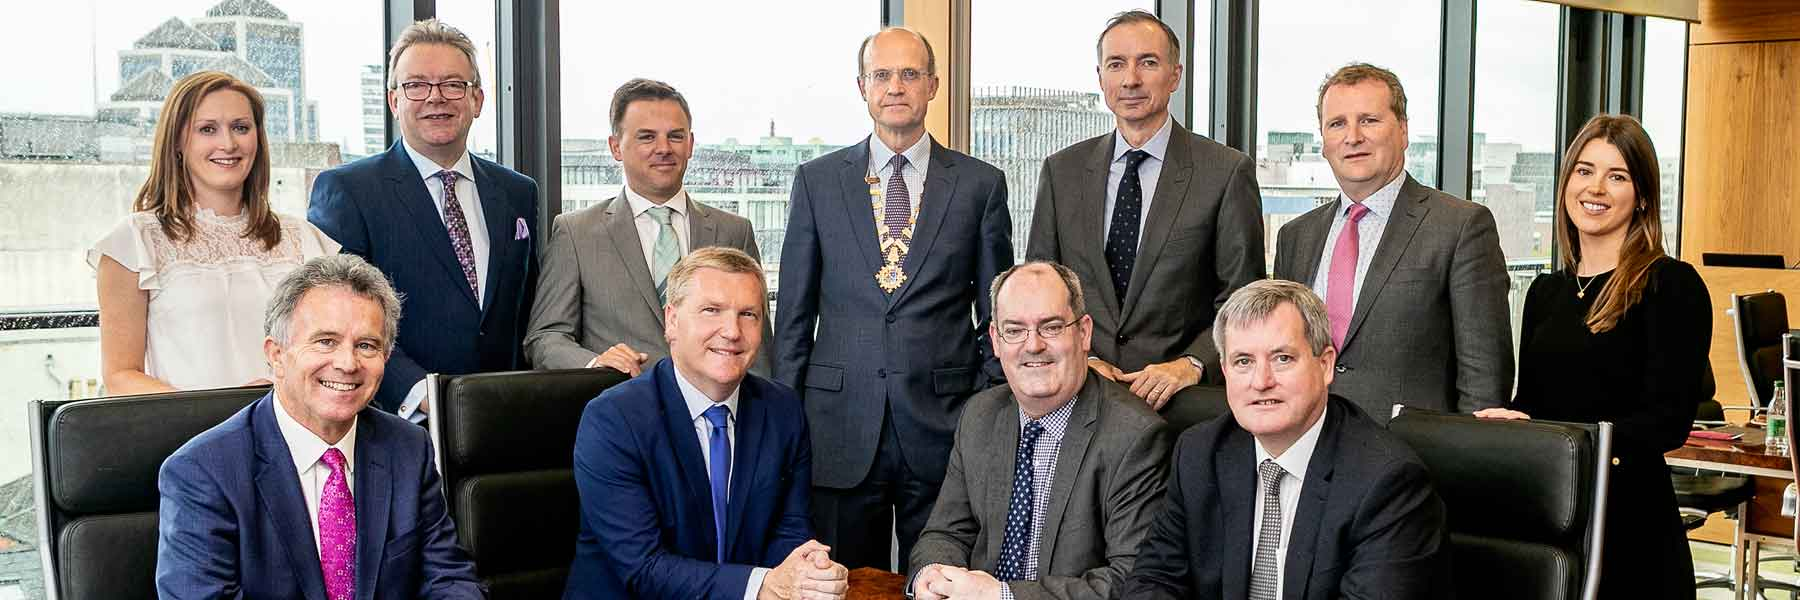 NEWS BODY - 2019 Members of the Oireachtas attend Institutes Pre-Budget-min